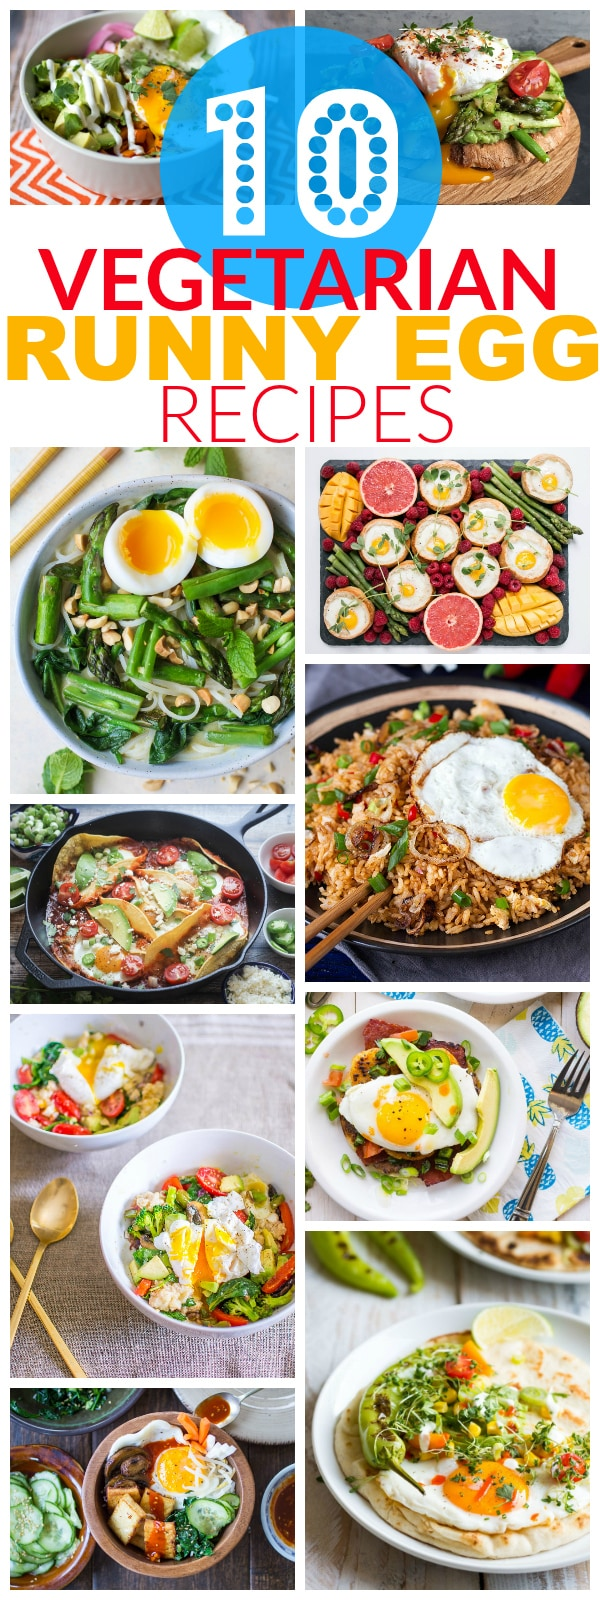 10 Vegetarian Runny Egg Recipes | These meatless recipes are loaded with drippy eggs, veggies, and plenty of avocado!